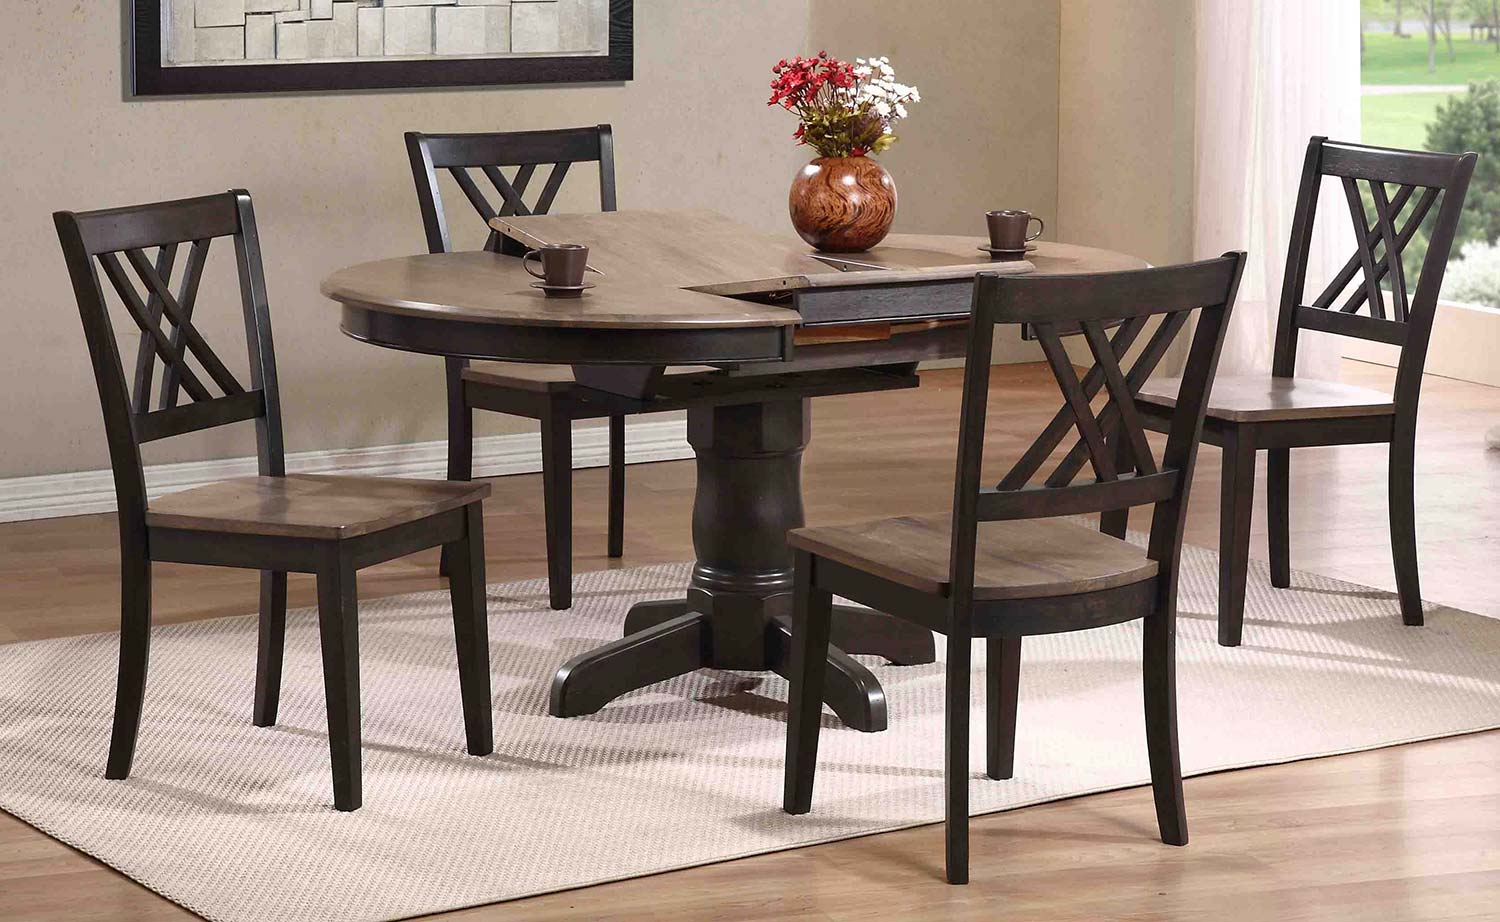 Iconic Furniture Dining Set   Grey Stone/Black Stone